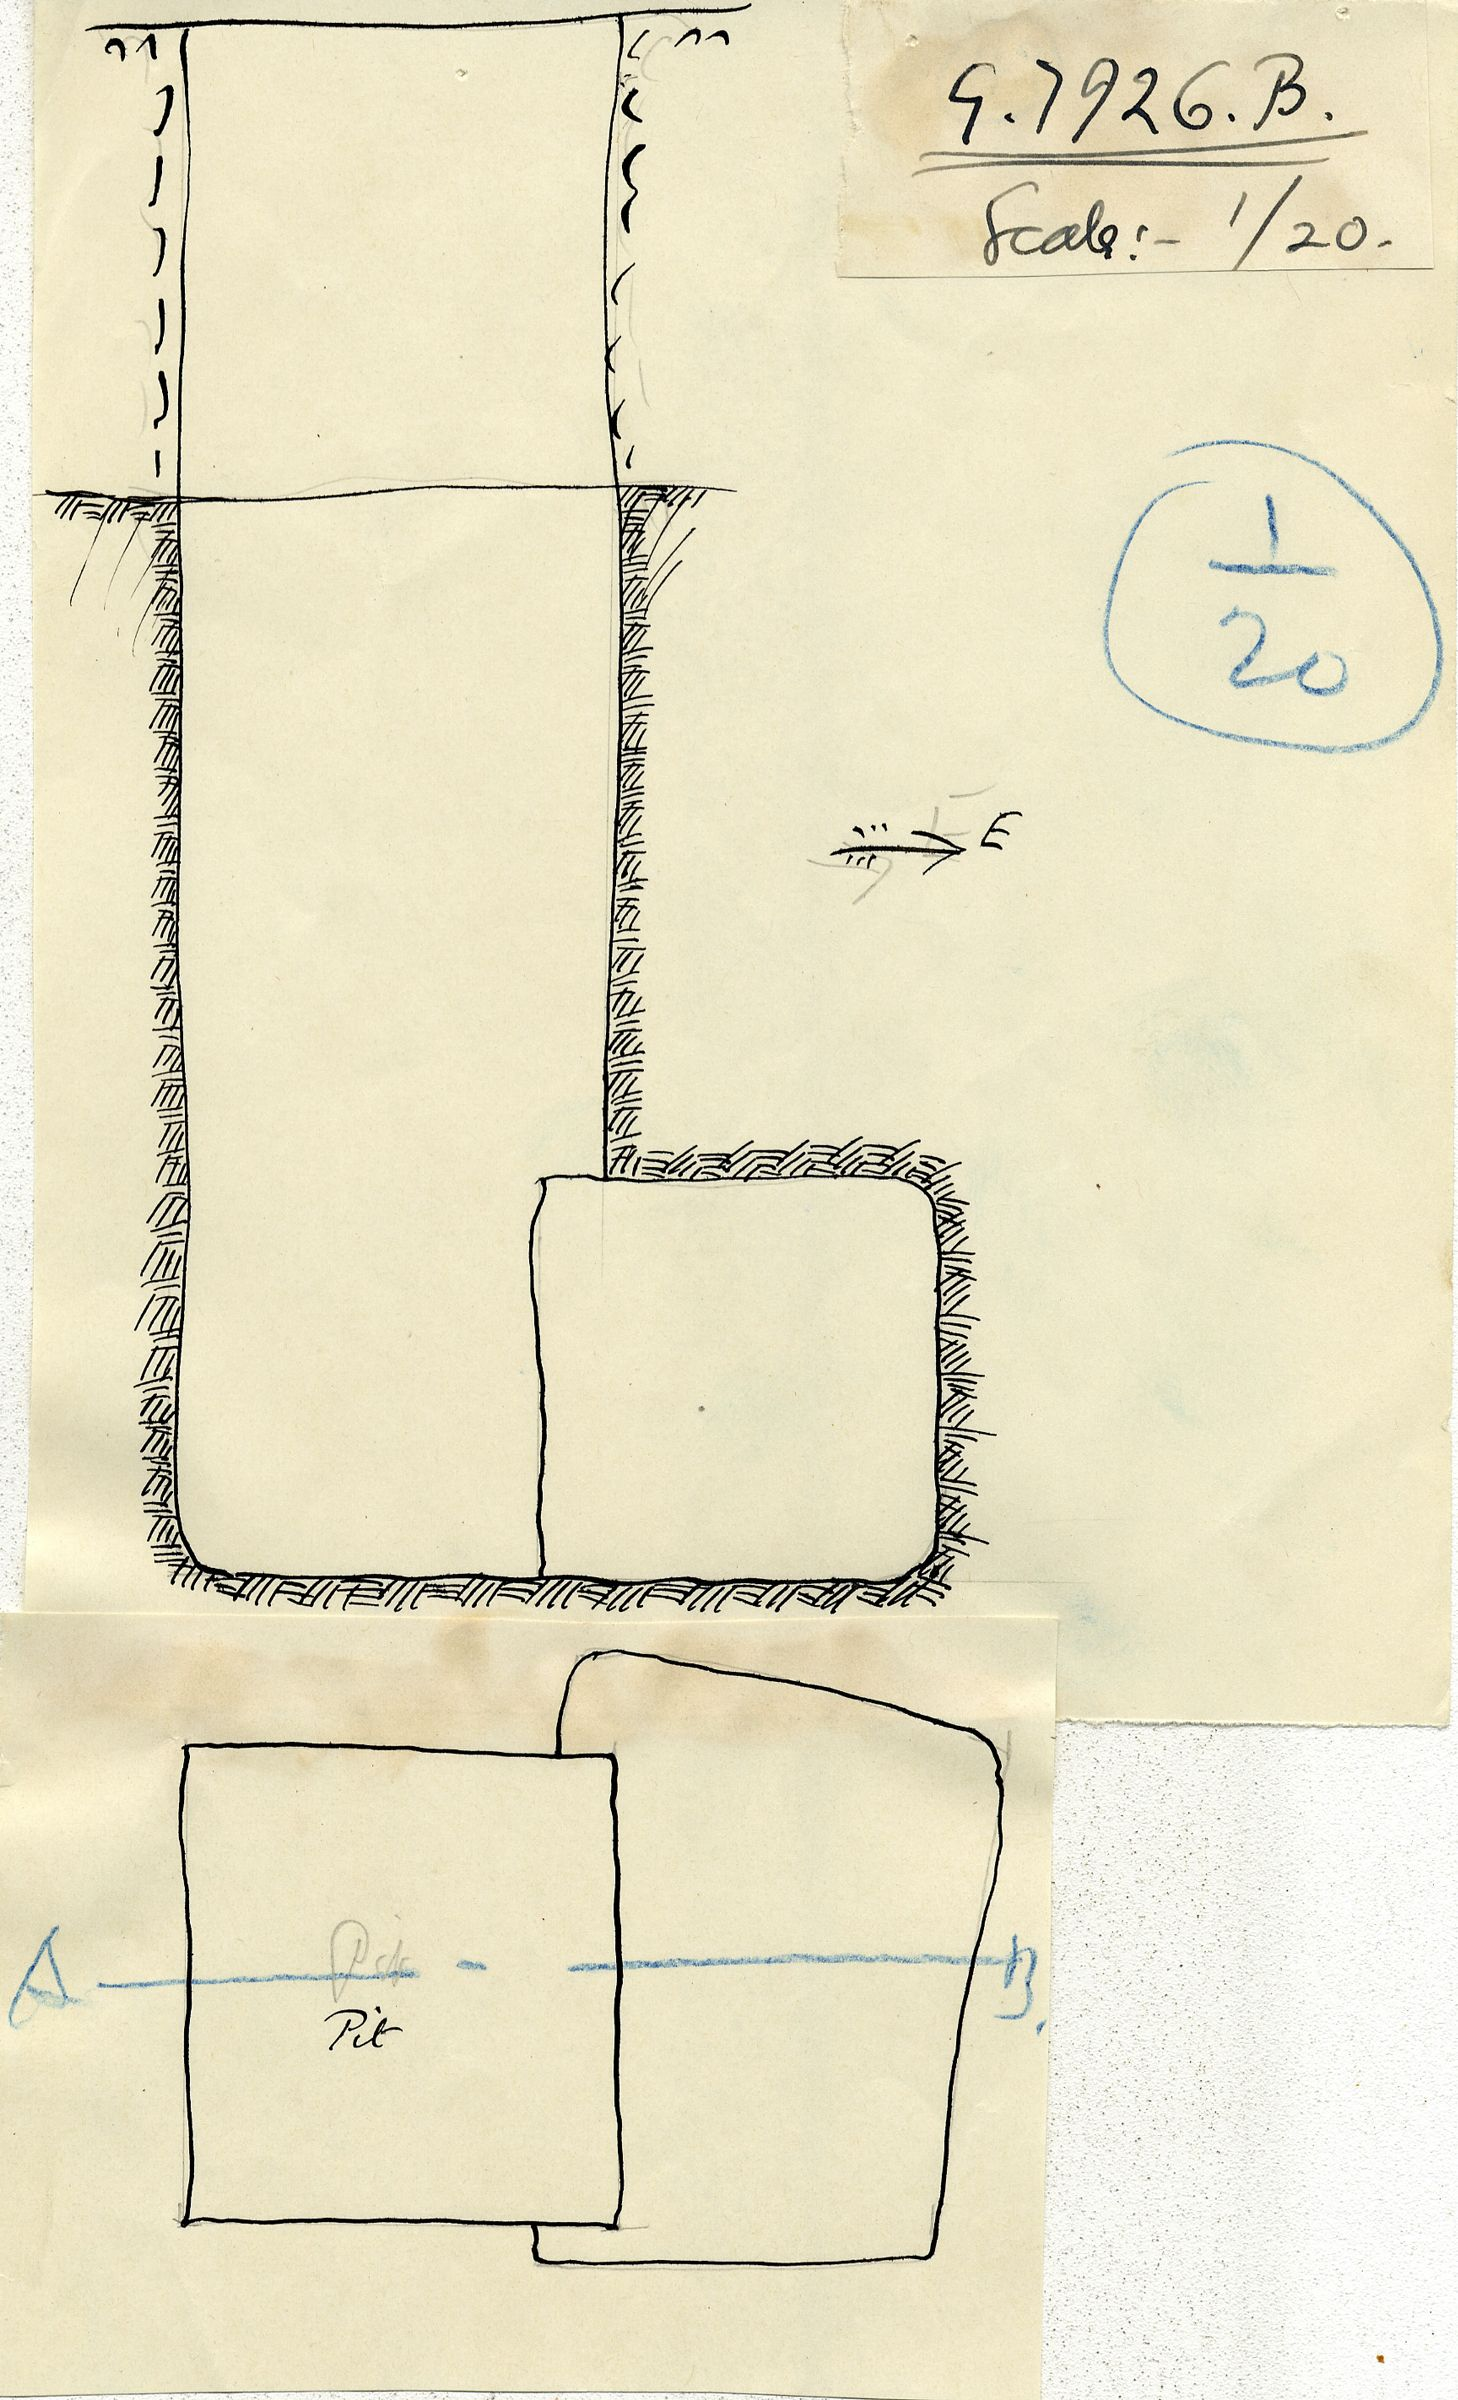 Maps and plans: G 7926, Shaft B